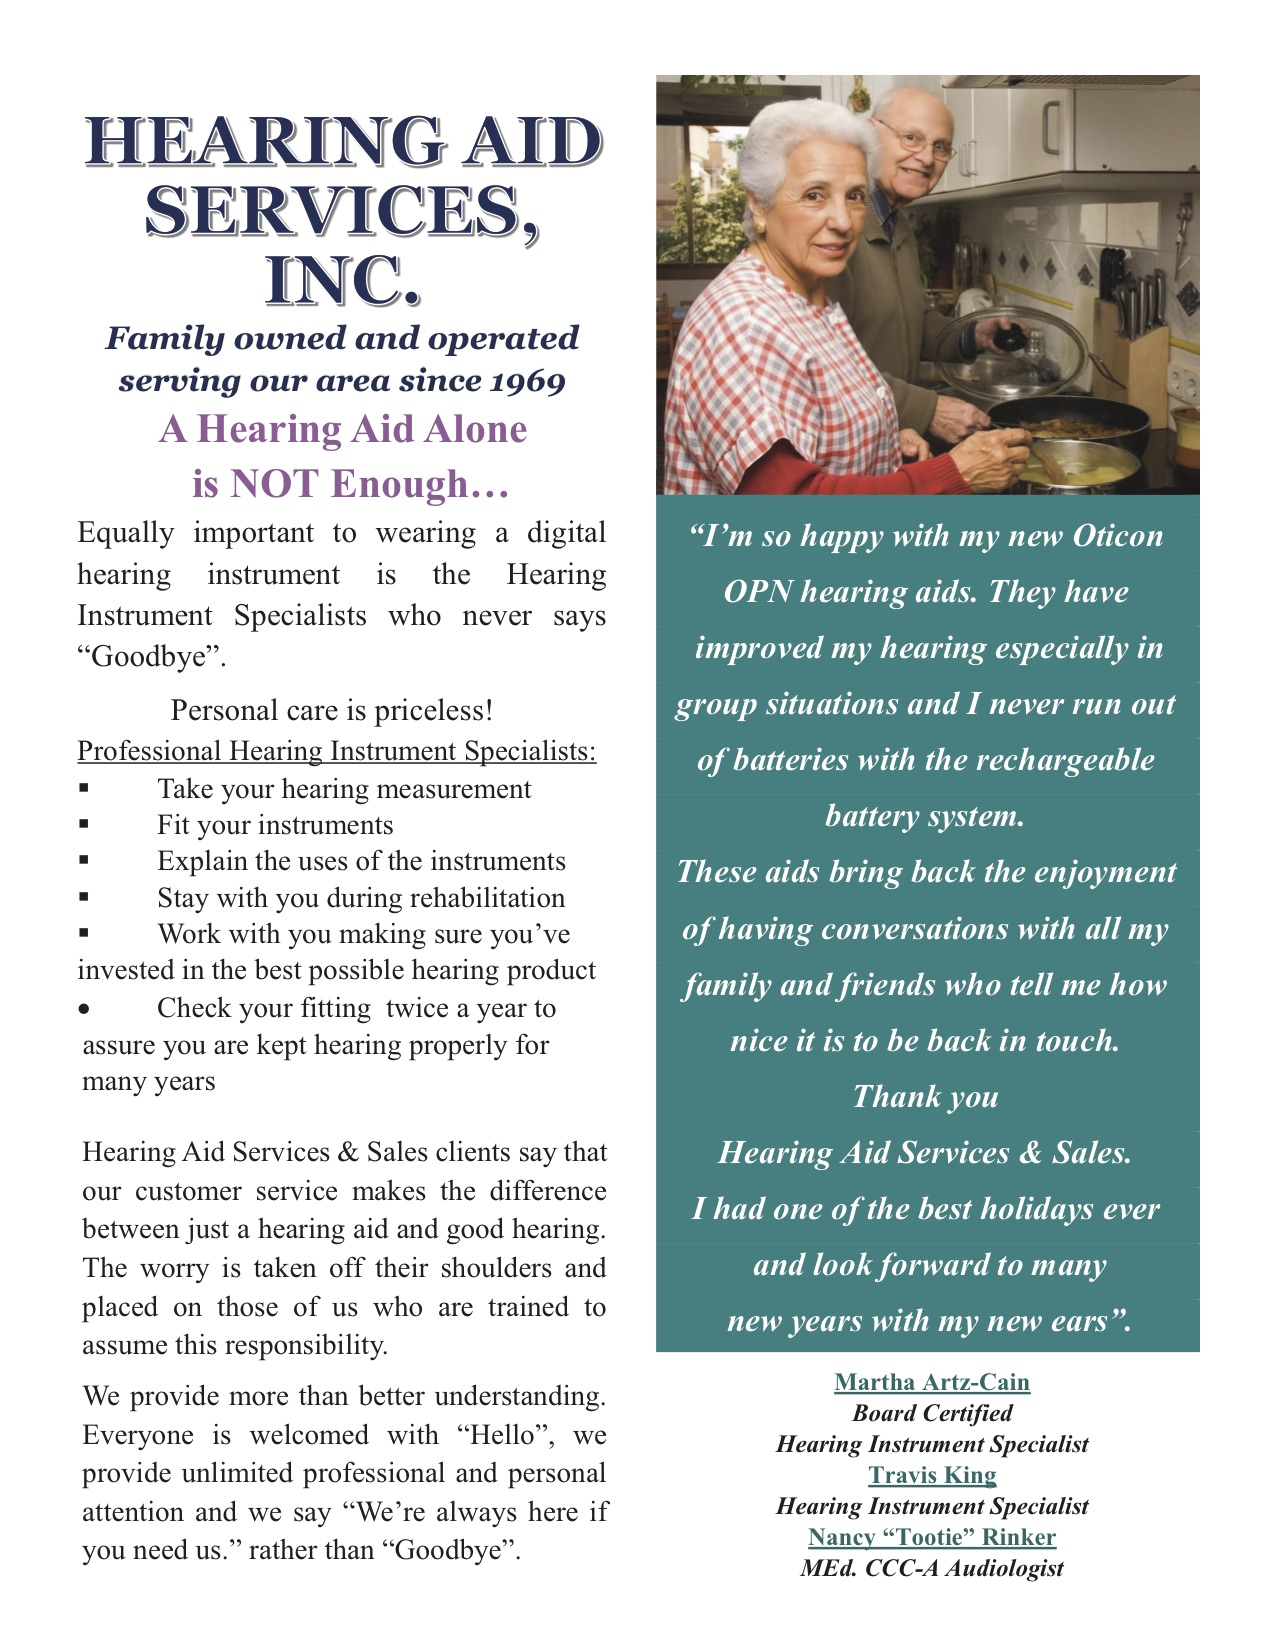 Hearing Aid Services Inc Promotion